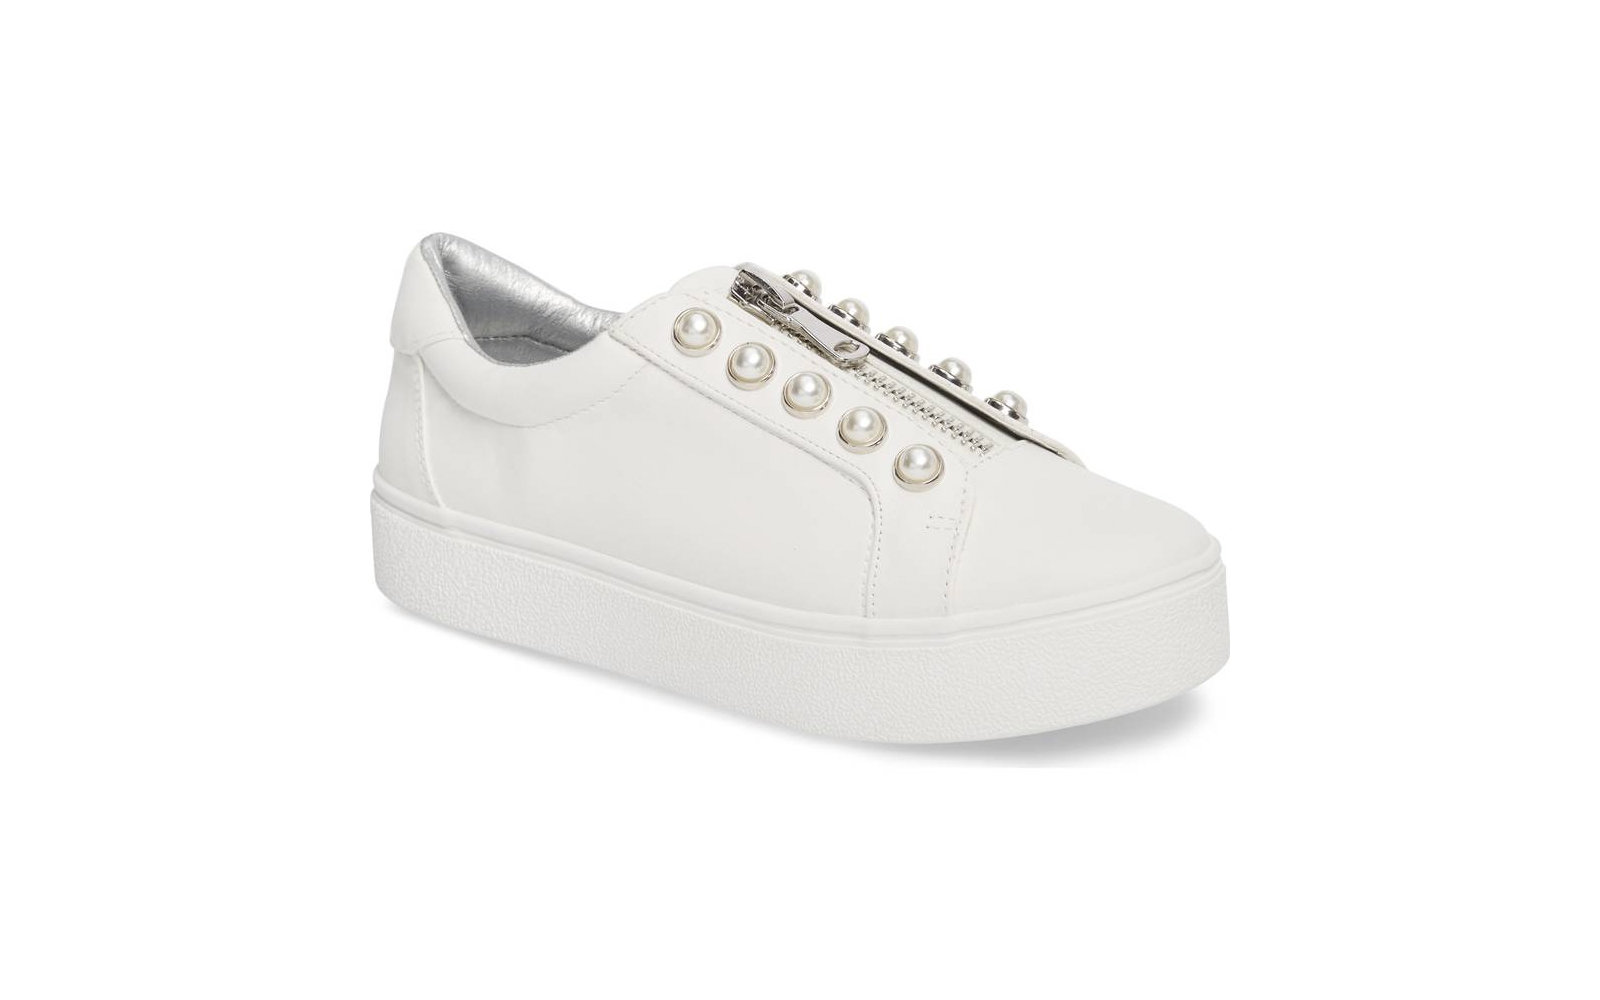 768a37f3ad09 Nordstrom s Half-yearly Sale Has So Many Comfy Sneakers for 40% Off ...